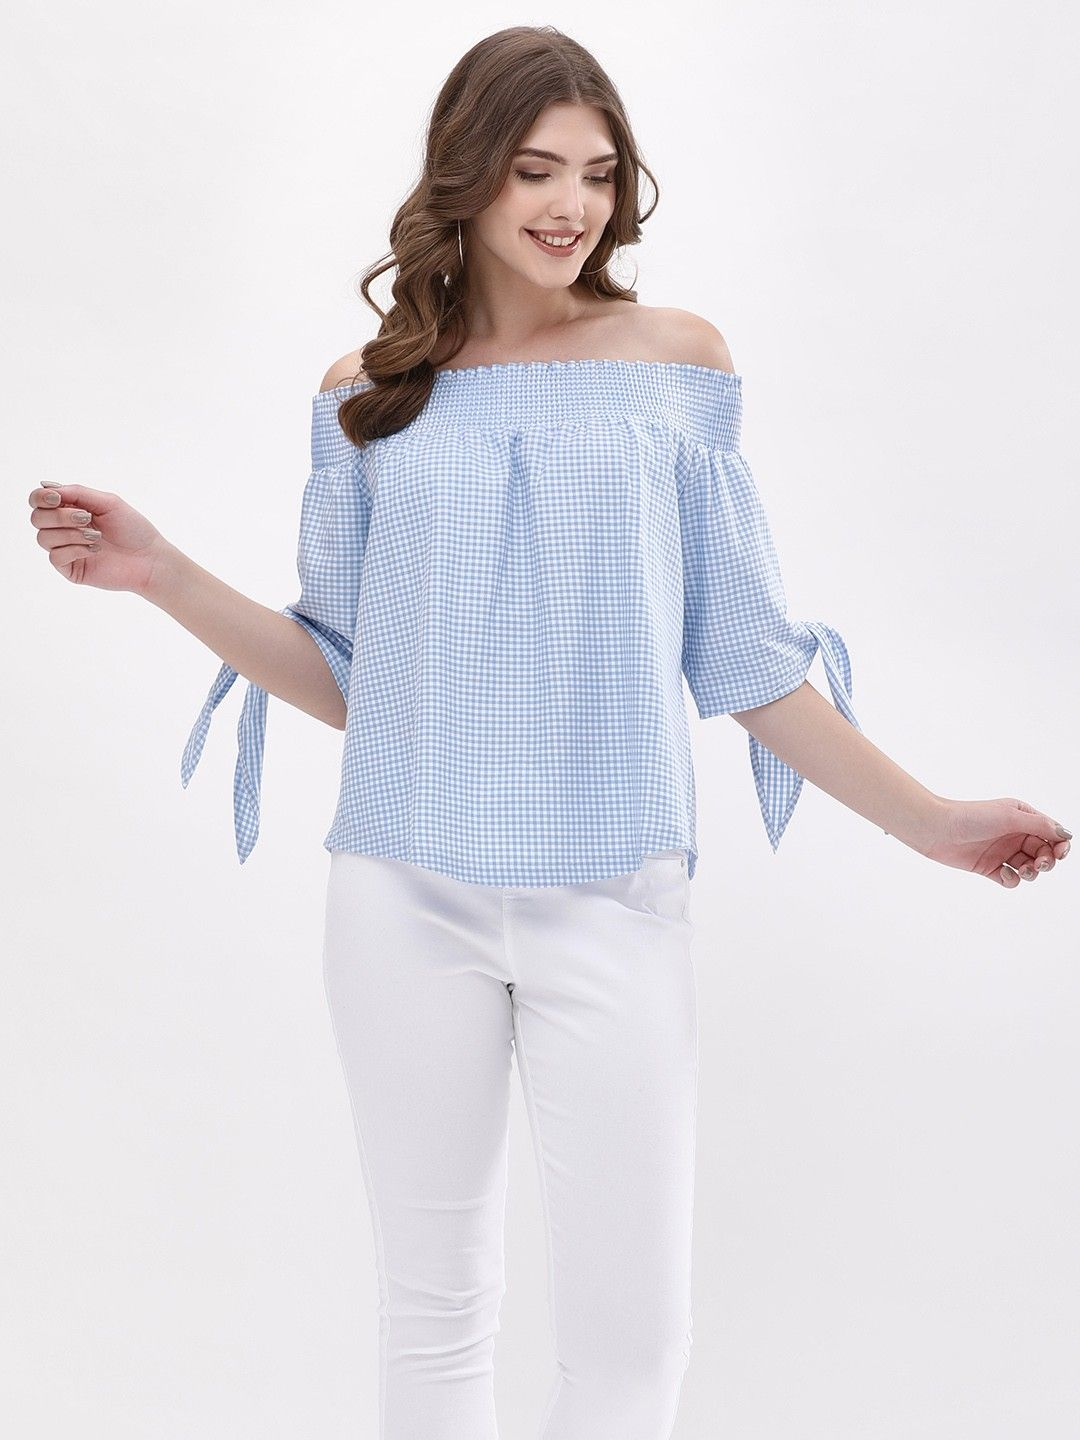 512a216a9 Buy off shoulder tops for girls online in India at koovs.com. Buy cold  shoulder tops, blouse in various designs – one side off shoulder tops, half  shoulder ...